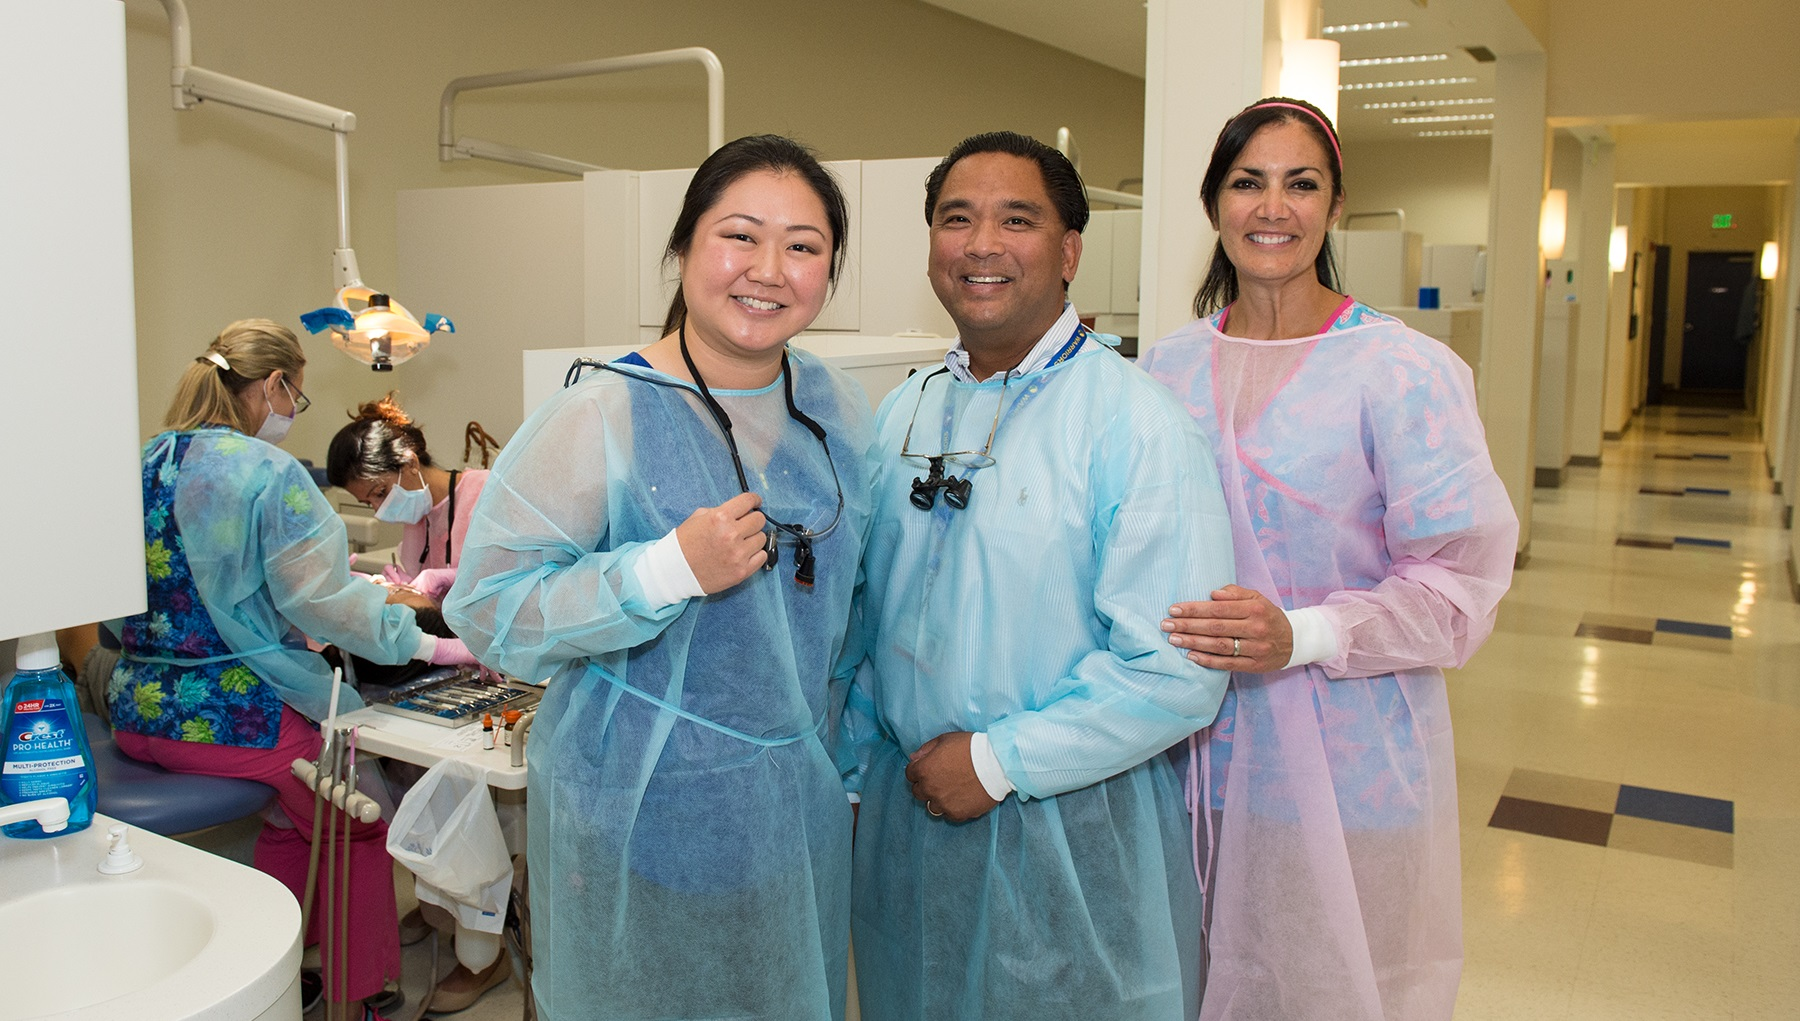 Our residents and staff are always ready to provide quality dental care.